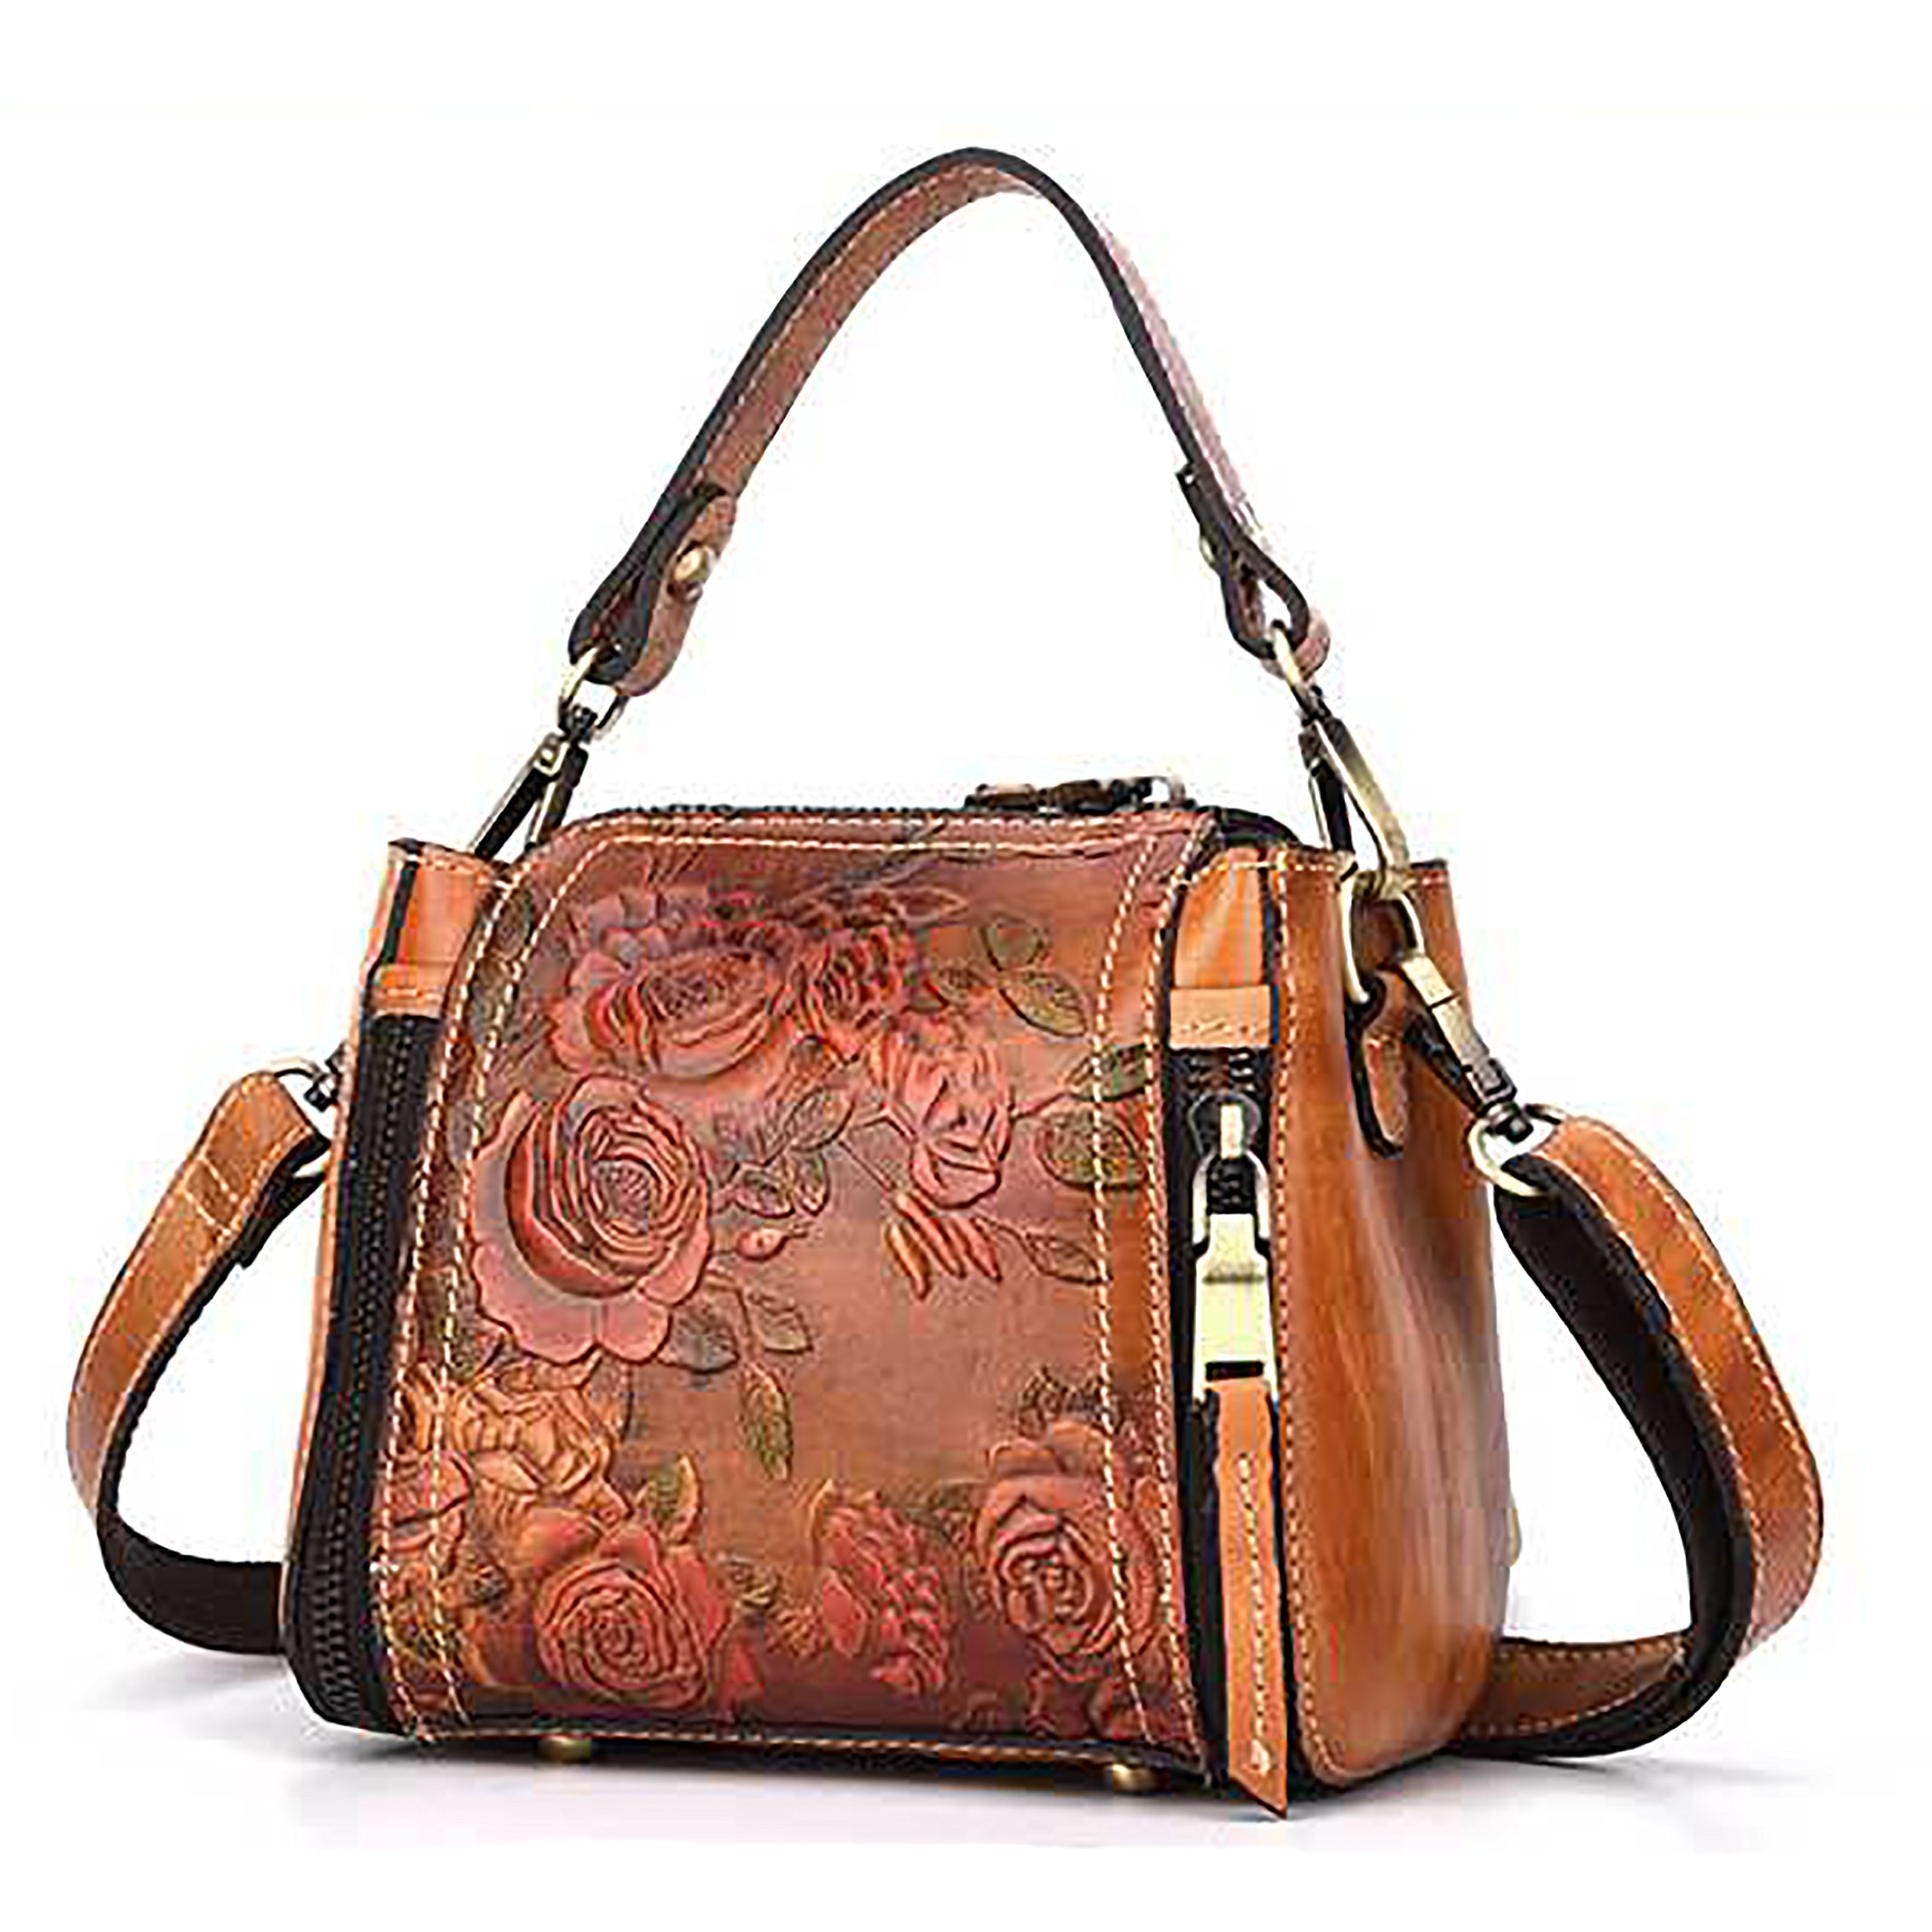 Crossbody Bag for Women Genuine Leather Top Handle Tote Purses Vintage Satchels Handbag(Brown)